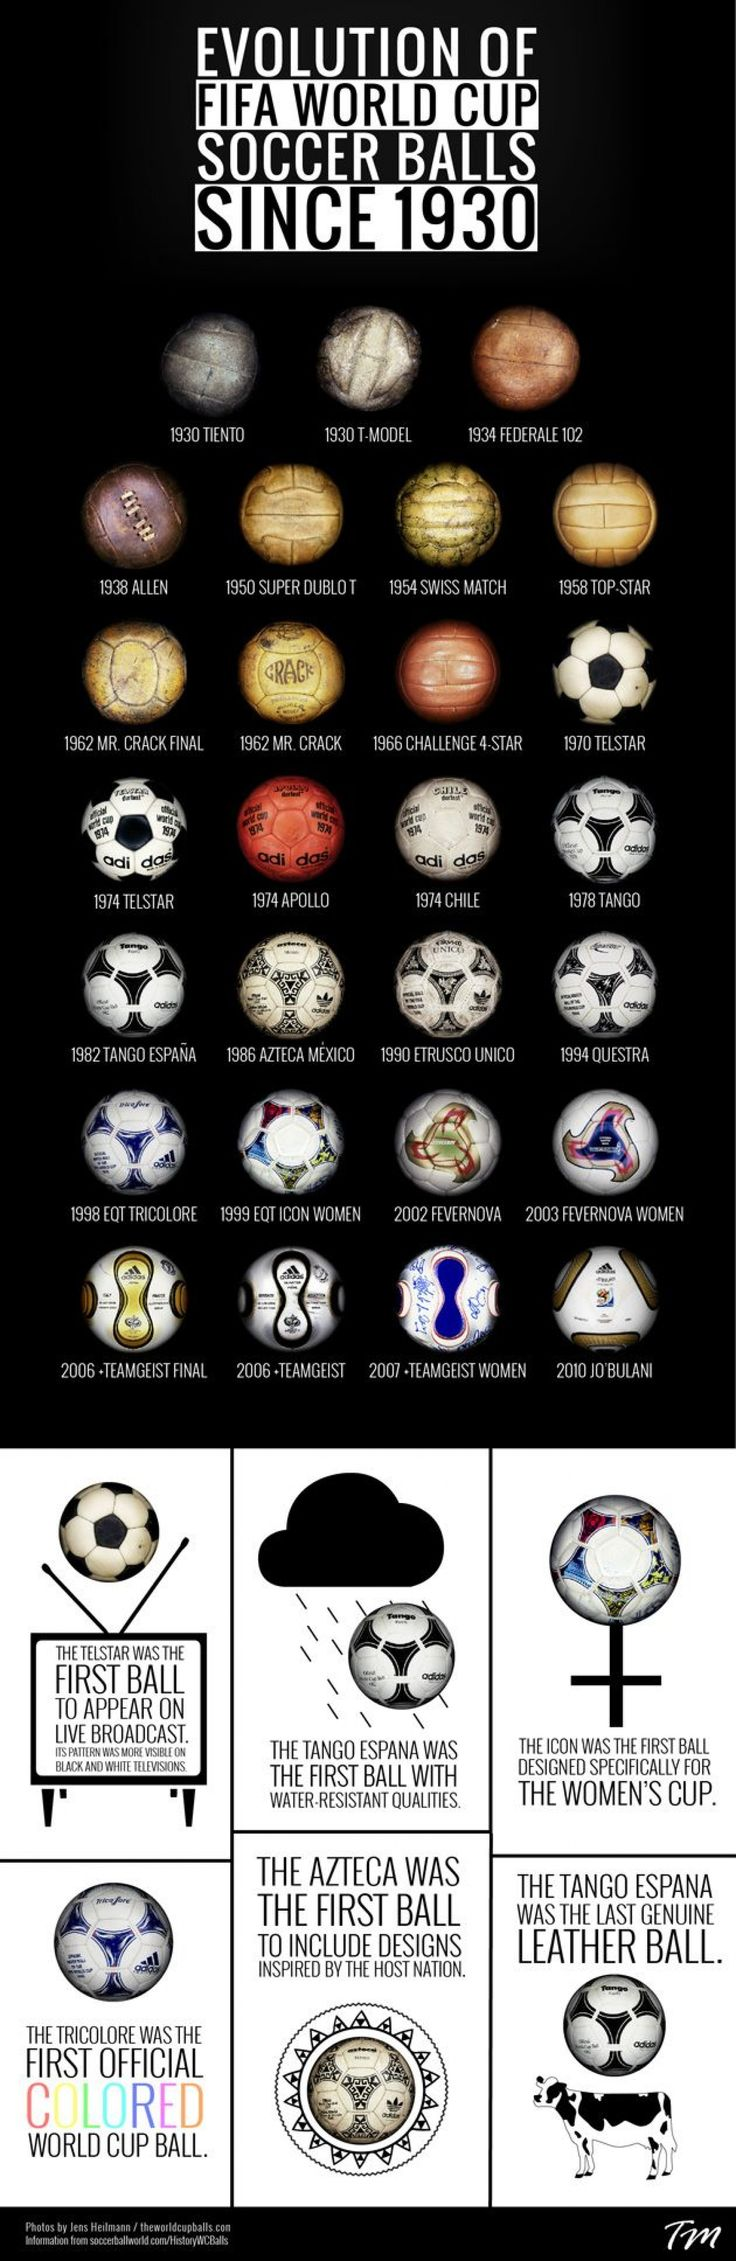 Evolution of FIFA World Cup Soccer Balls since 1930